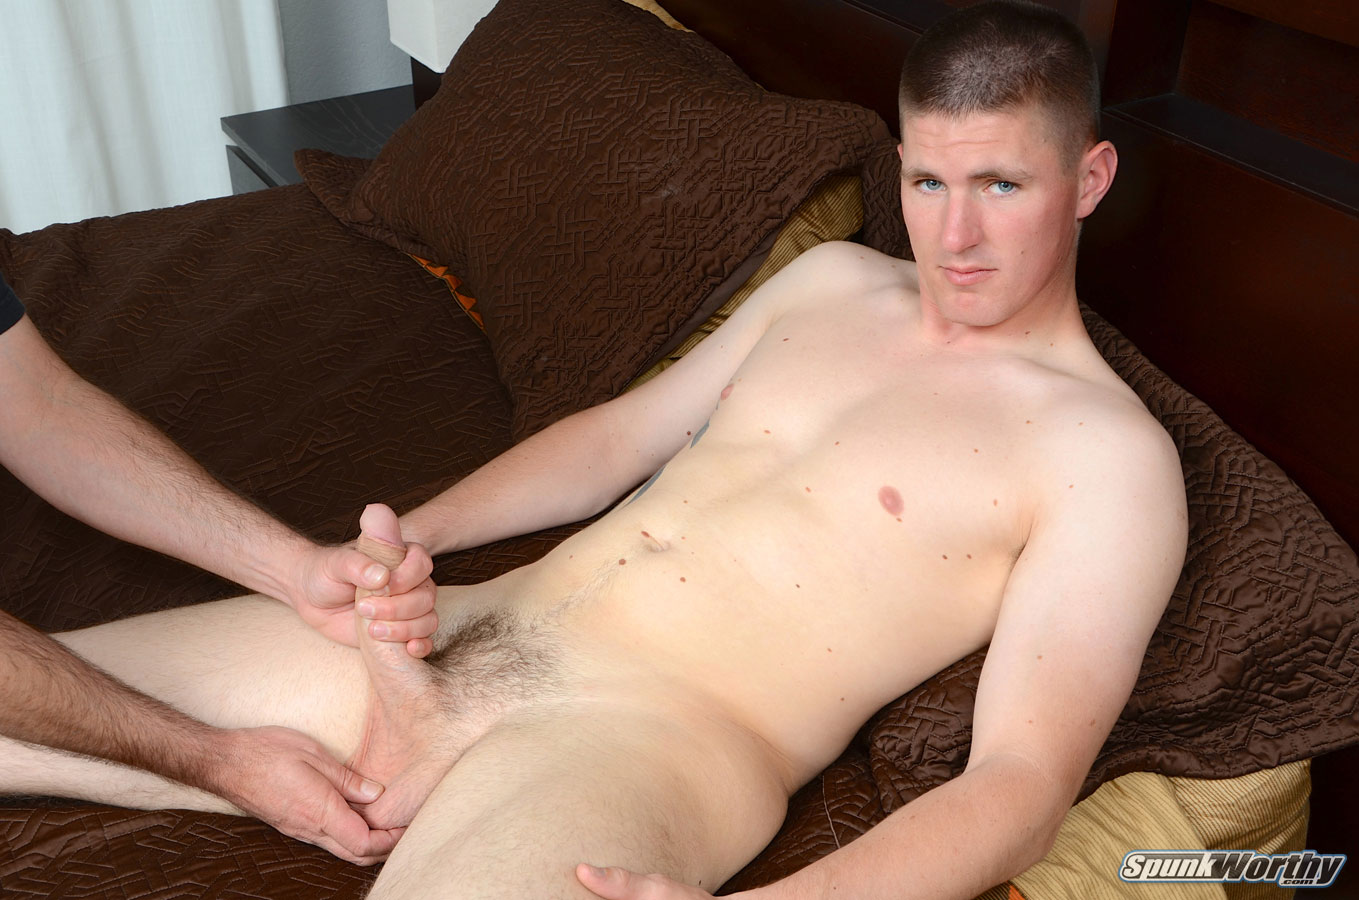 SpunkWorthy Eli Straight Marine Gets A Hand Job Fleshlight from A guy Amateur Gay Porn 06 Straight Marine Gets His First Hand Job From Another Guy